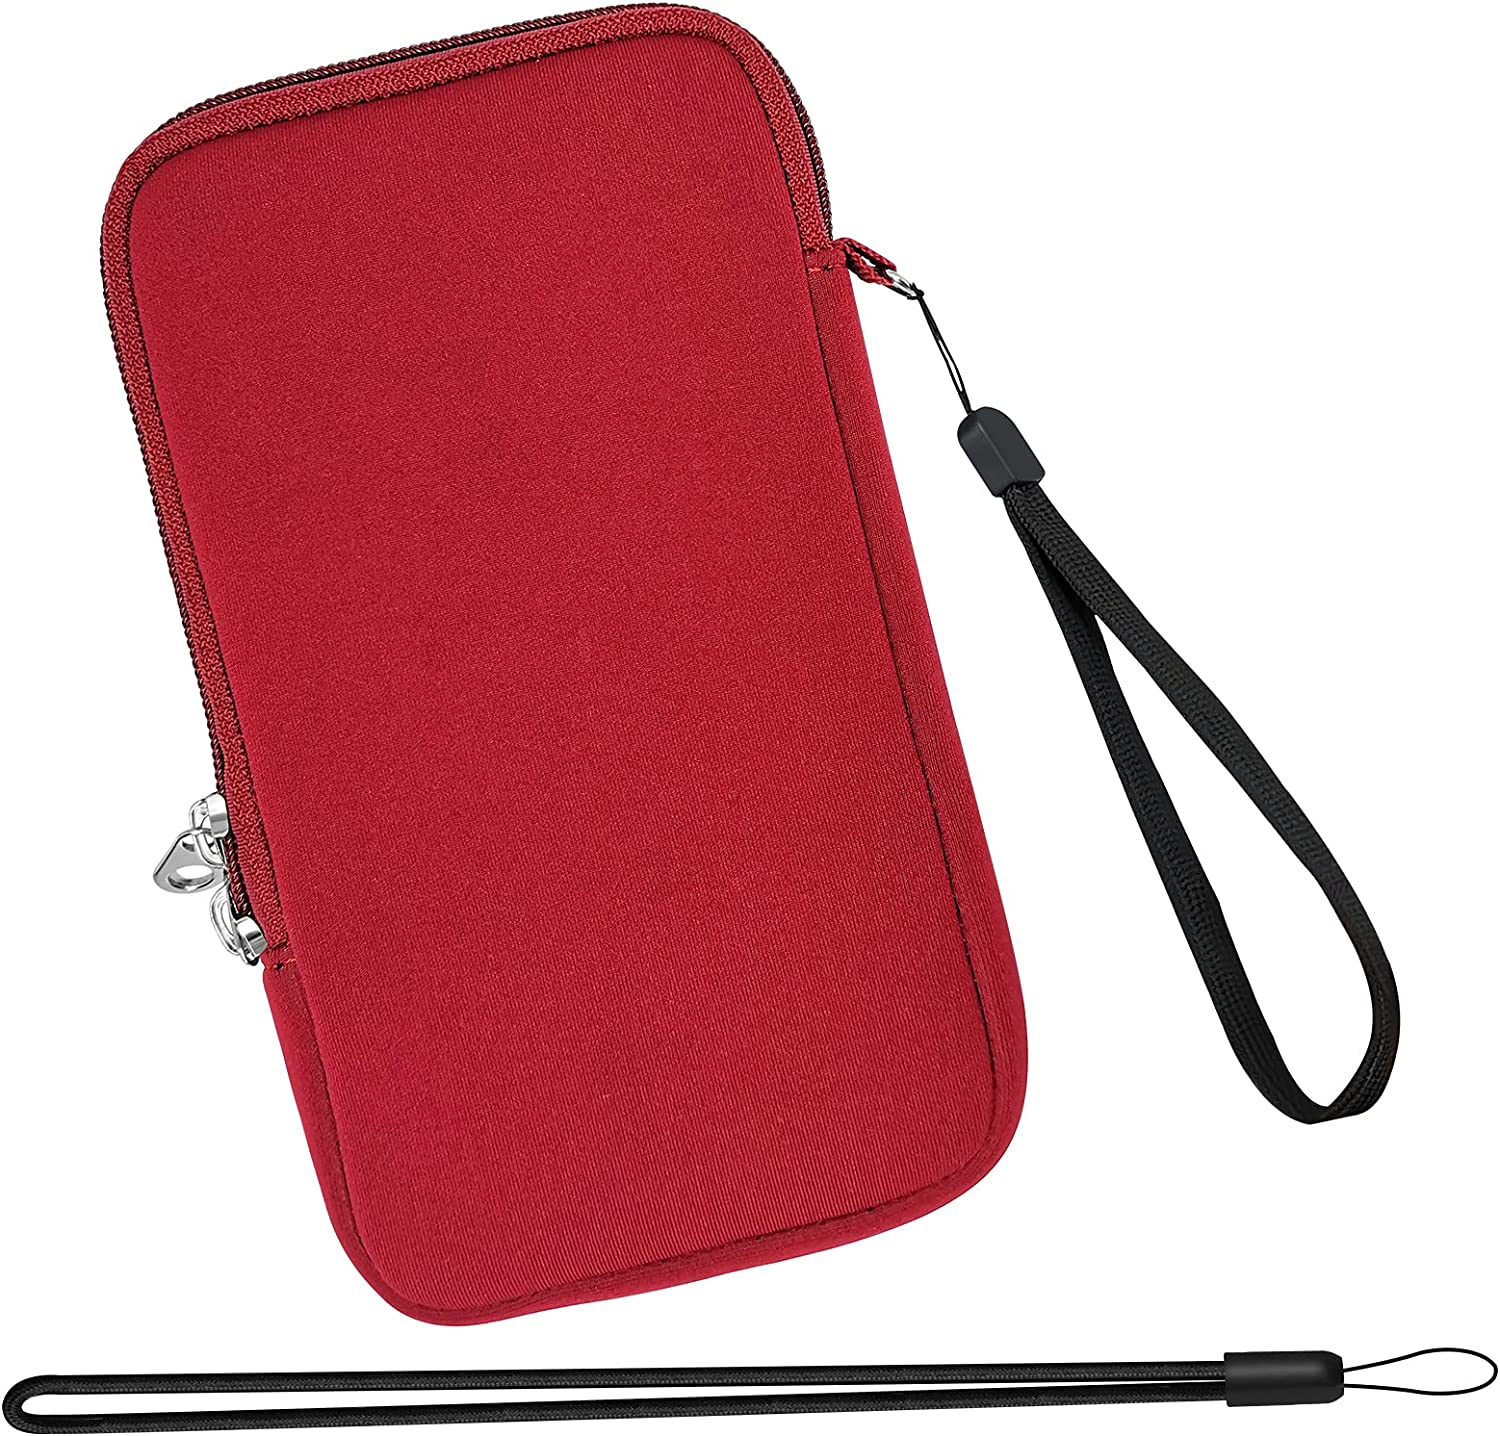 XBERSTAR Soft Carrying Pouch Max 50% OFF Sleeve Bag Case At the price of surprise Neoprene for Cover